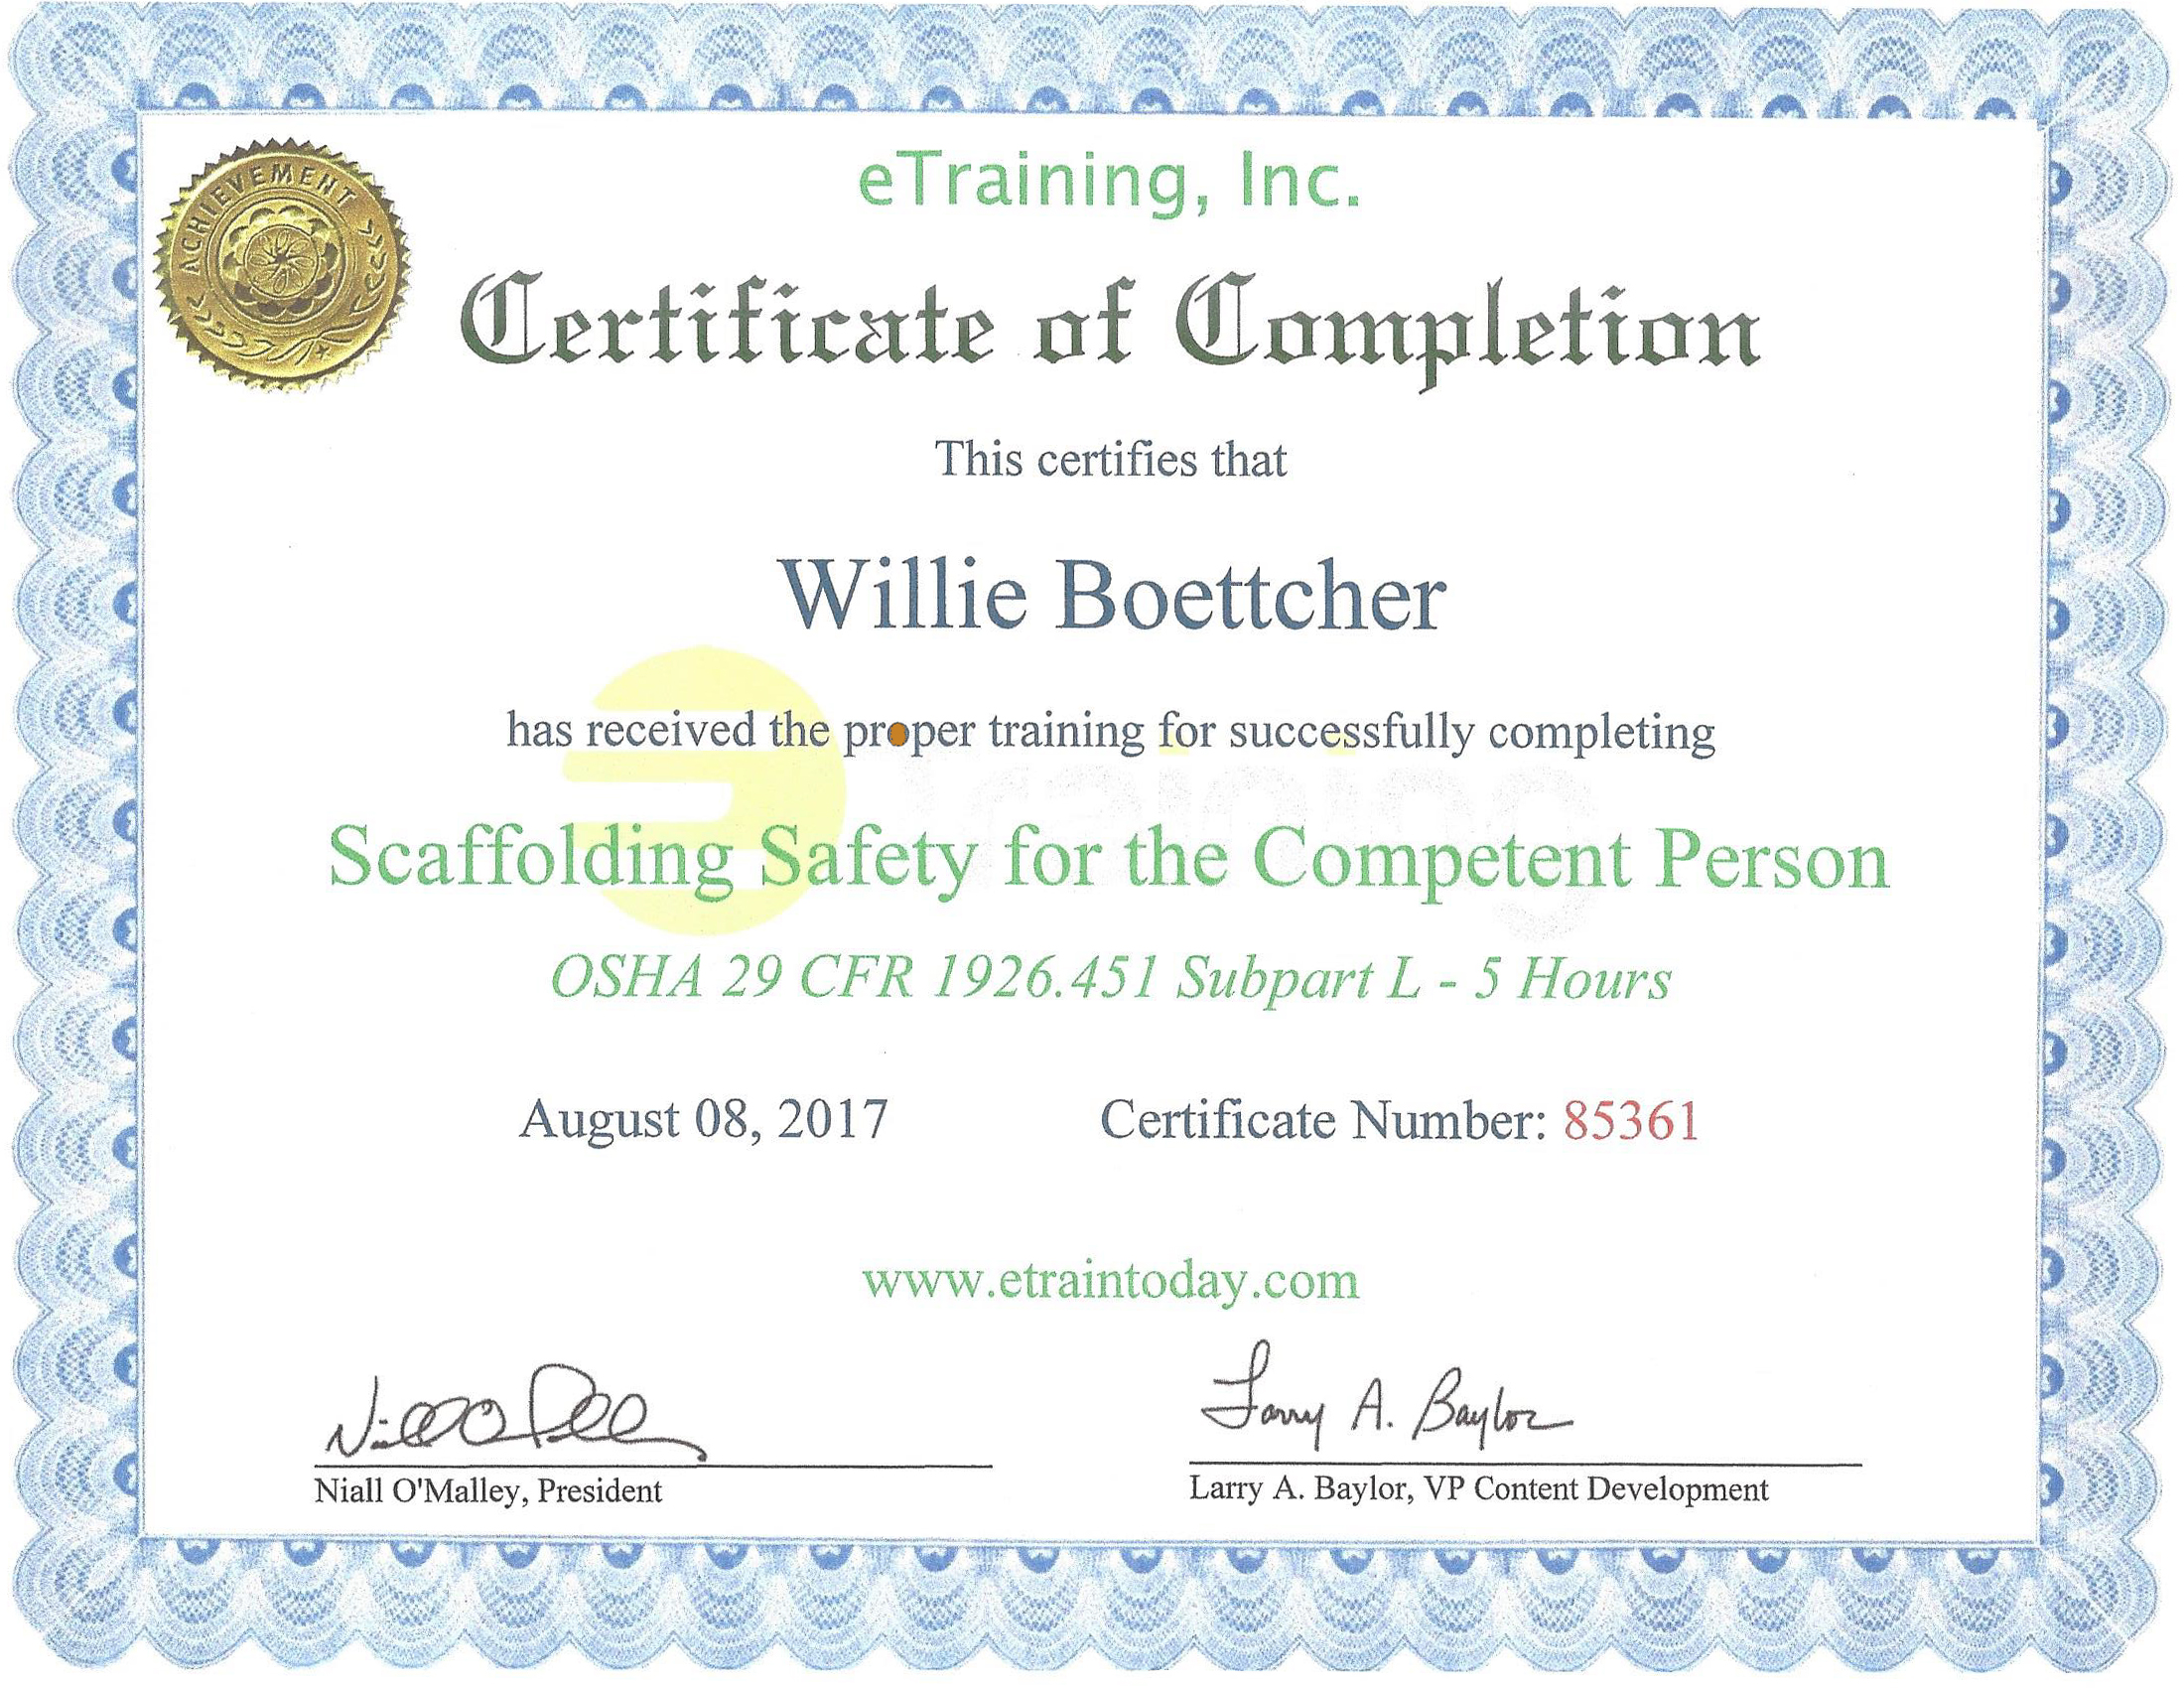 Certificate of Scaffolding Safety